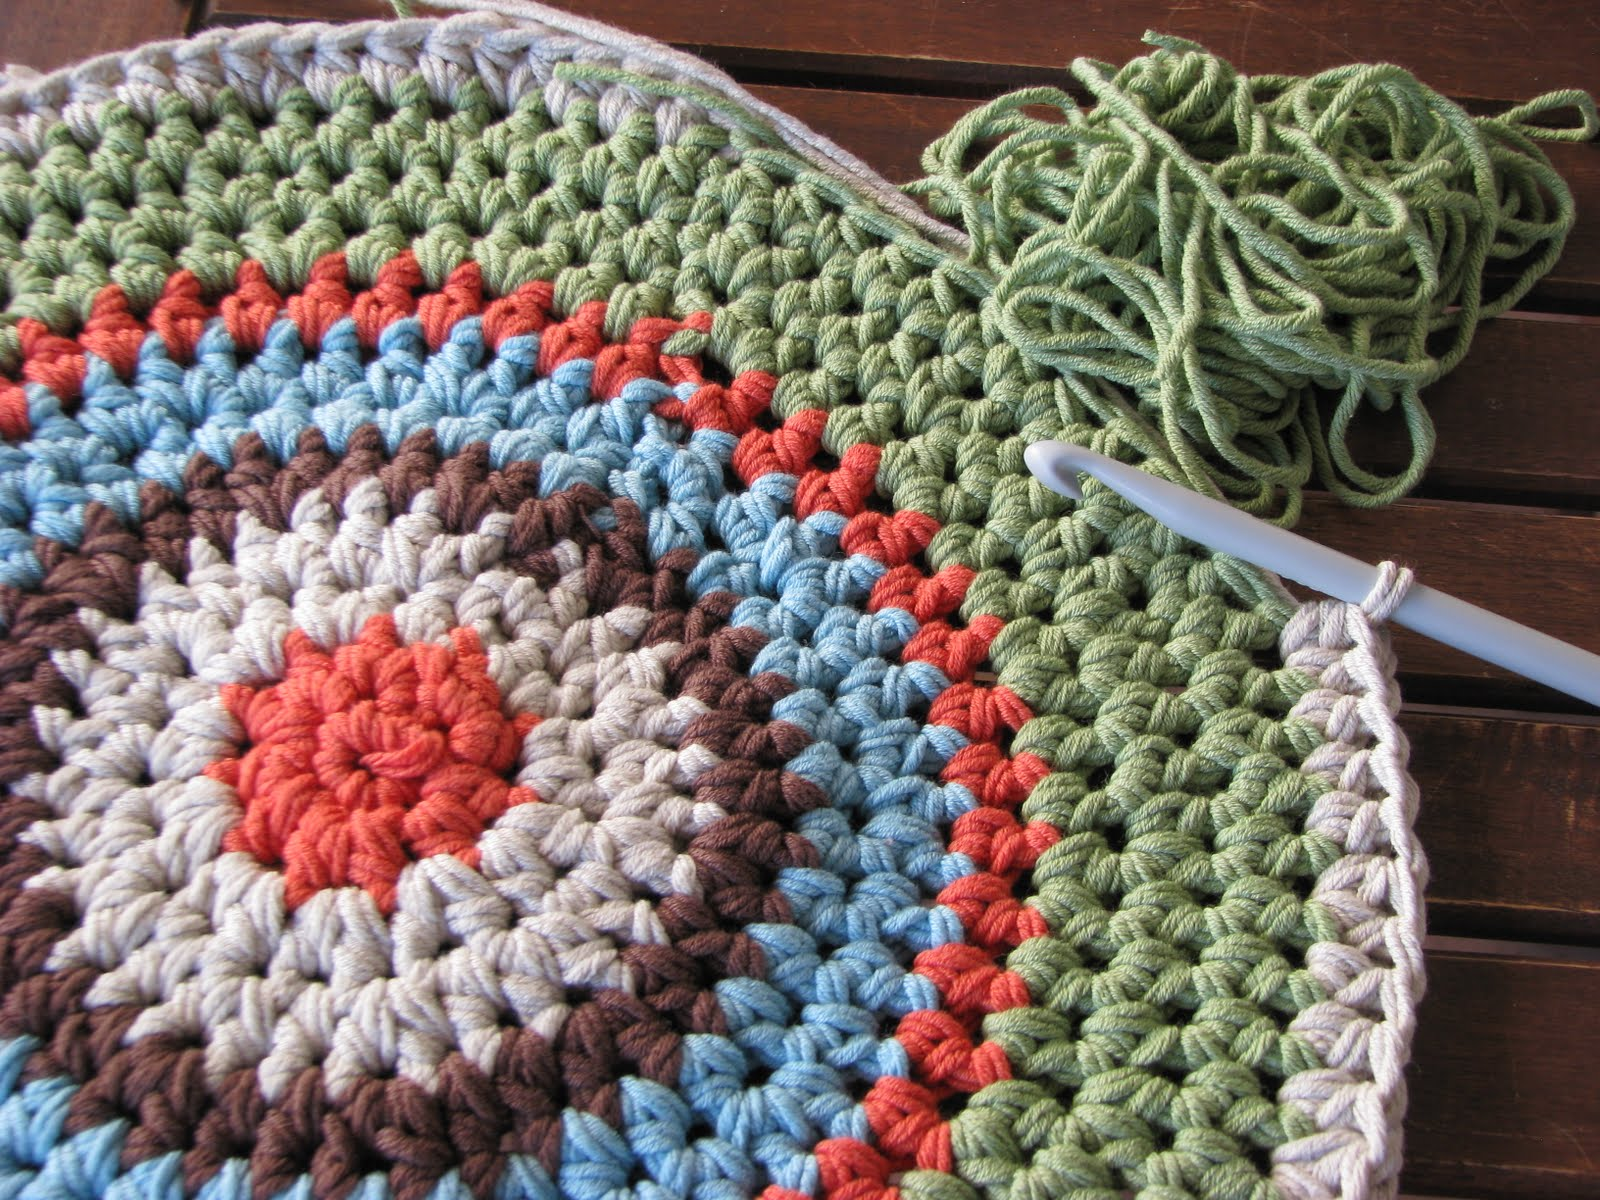 Crocheting Yarn : CROCHET YARN RUG PATTERN - Crochet Club